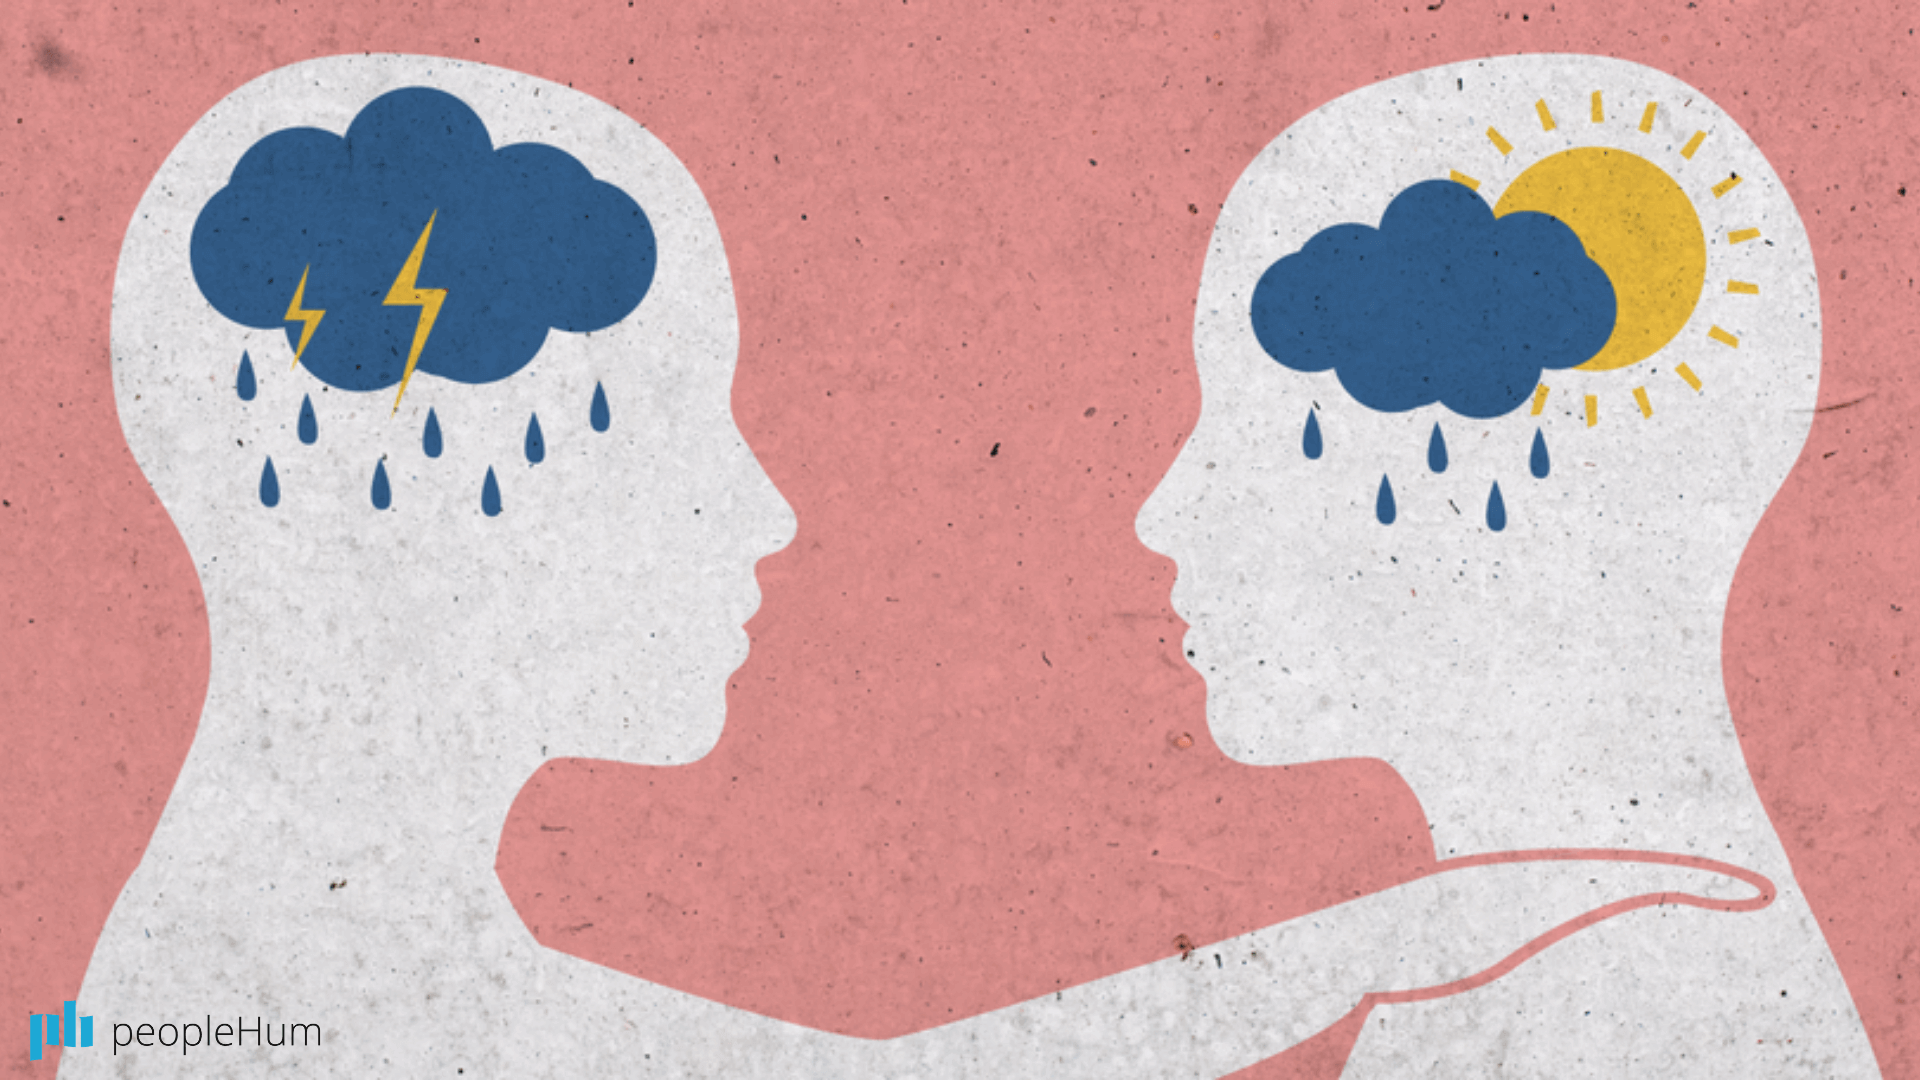 Are you sure you want to work with an empathic (only) leader?